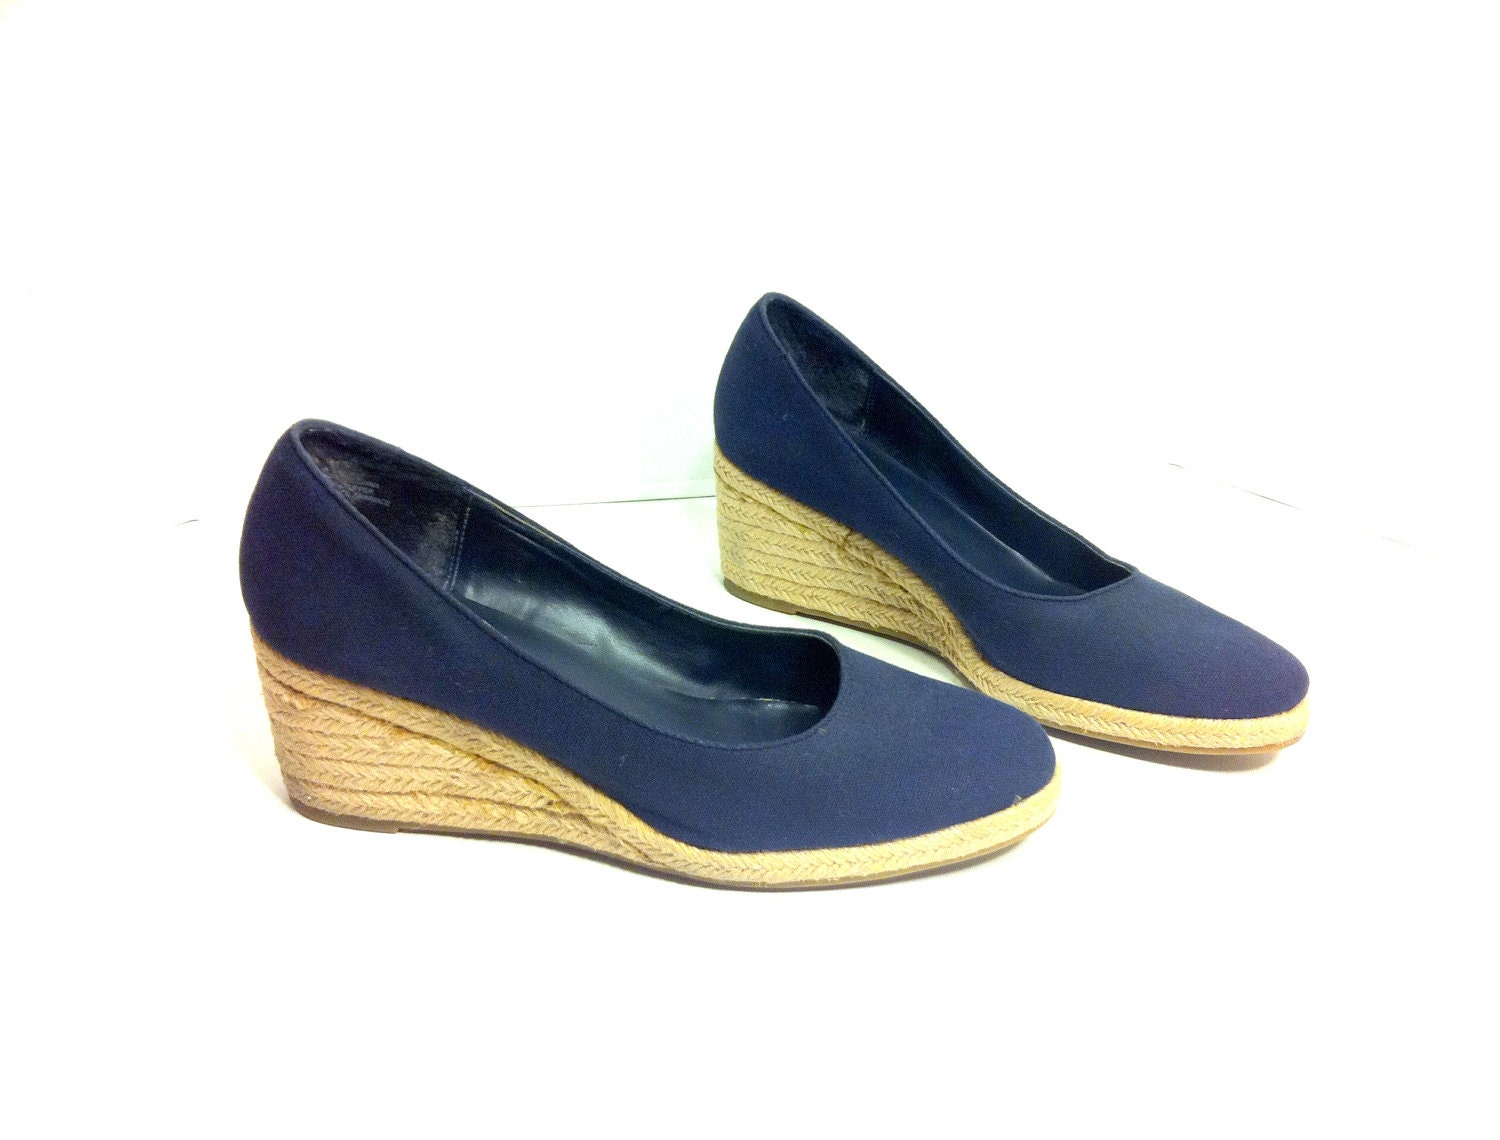 canvas wedge espadrilles 9 navy woven slip on mules 9